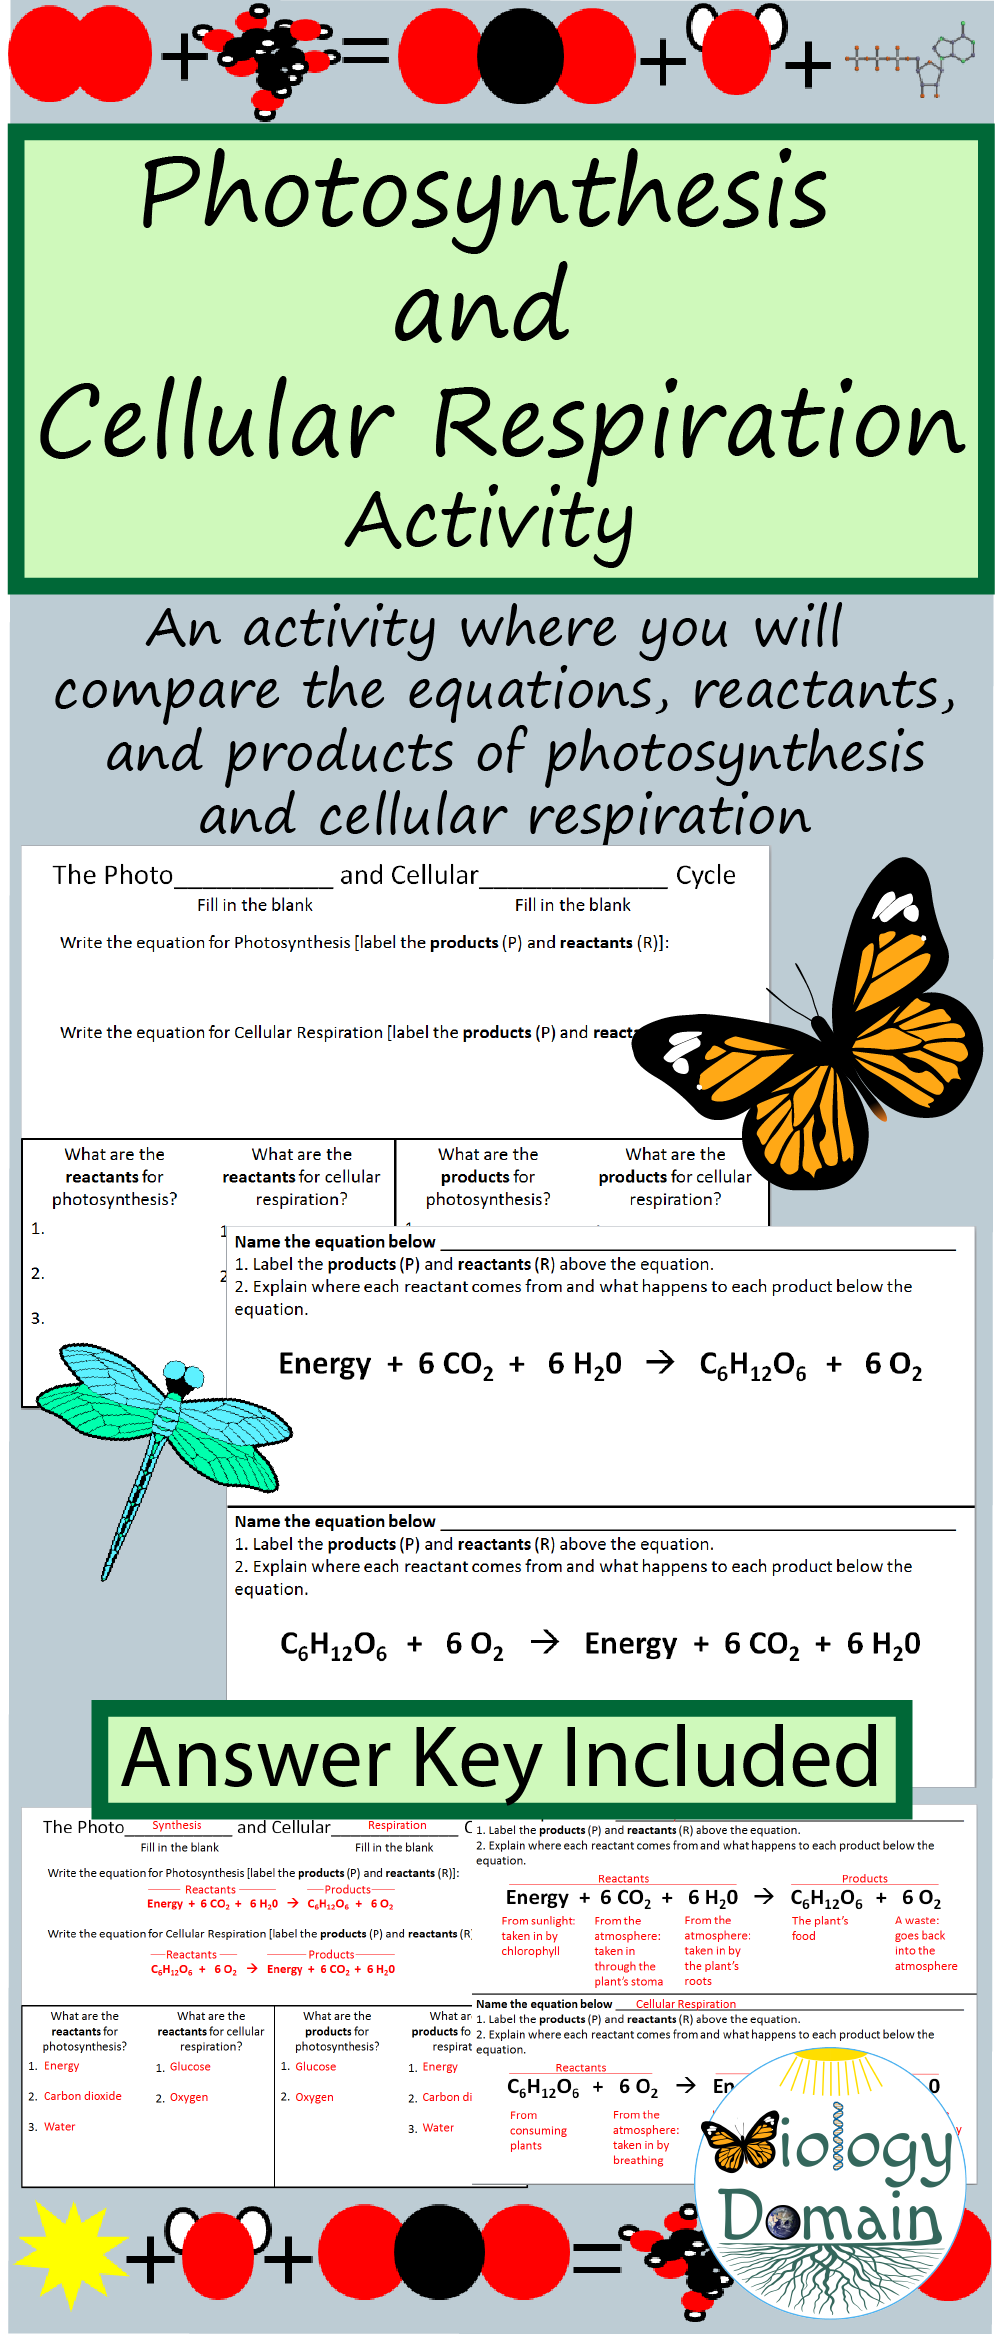 Photosynthesis and Cellular Respiration   parison with Answer Key moreover  additionally  as well photosynthesis and respiration venn diagram – tropicalspa co as well Photosynthesis and Cellular Respiration  parison Table   TpT further 19 Unique Photosynthesis and Respiration Worksheet Answers additionally  further Photosynthesis and Respiration Worksheet Answers  168125600008 moreover paring Photosynthesis and Cellular Respiration Worksheet 21 also Photosynthesis And Cellular Respiration Worksheet   Lobo Black also Chart  paring photosynthesis to respiration  this image is also a as well  besides Photosynthesis and Cellular Respiration   parison with Answer Key besides Cycles   systems  introduction  Teach further Synthesis   Cellular Respiration Diagram By Image Below in addition Photosynthesis and Cellular Respiration  parison Chart by A Thom. on comparing photosynthesis and respiration worksheet